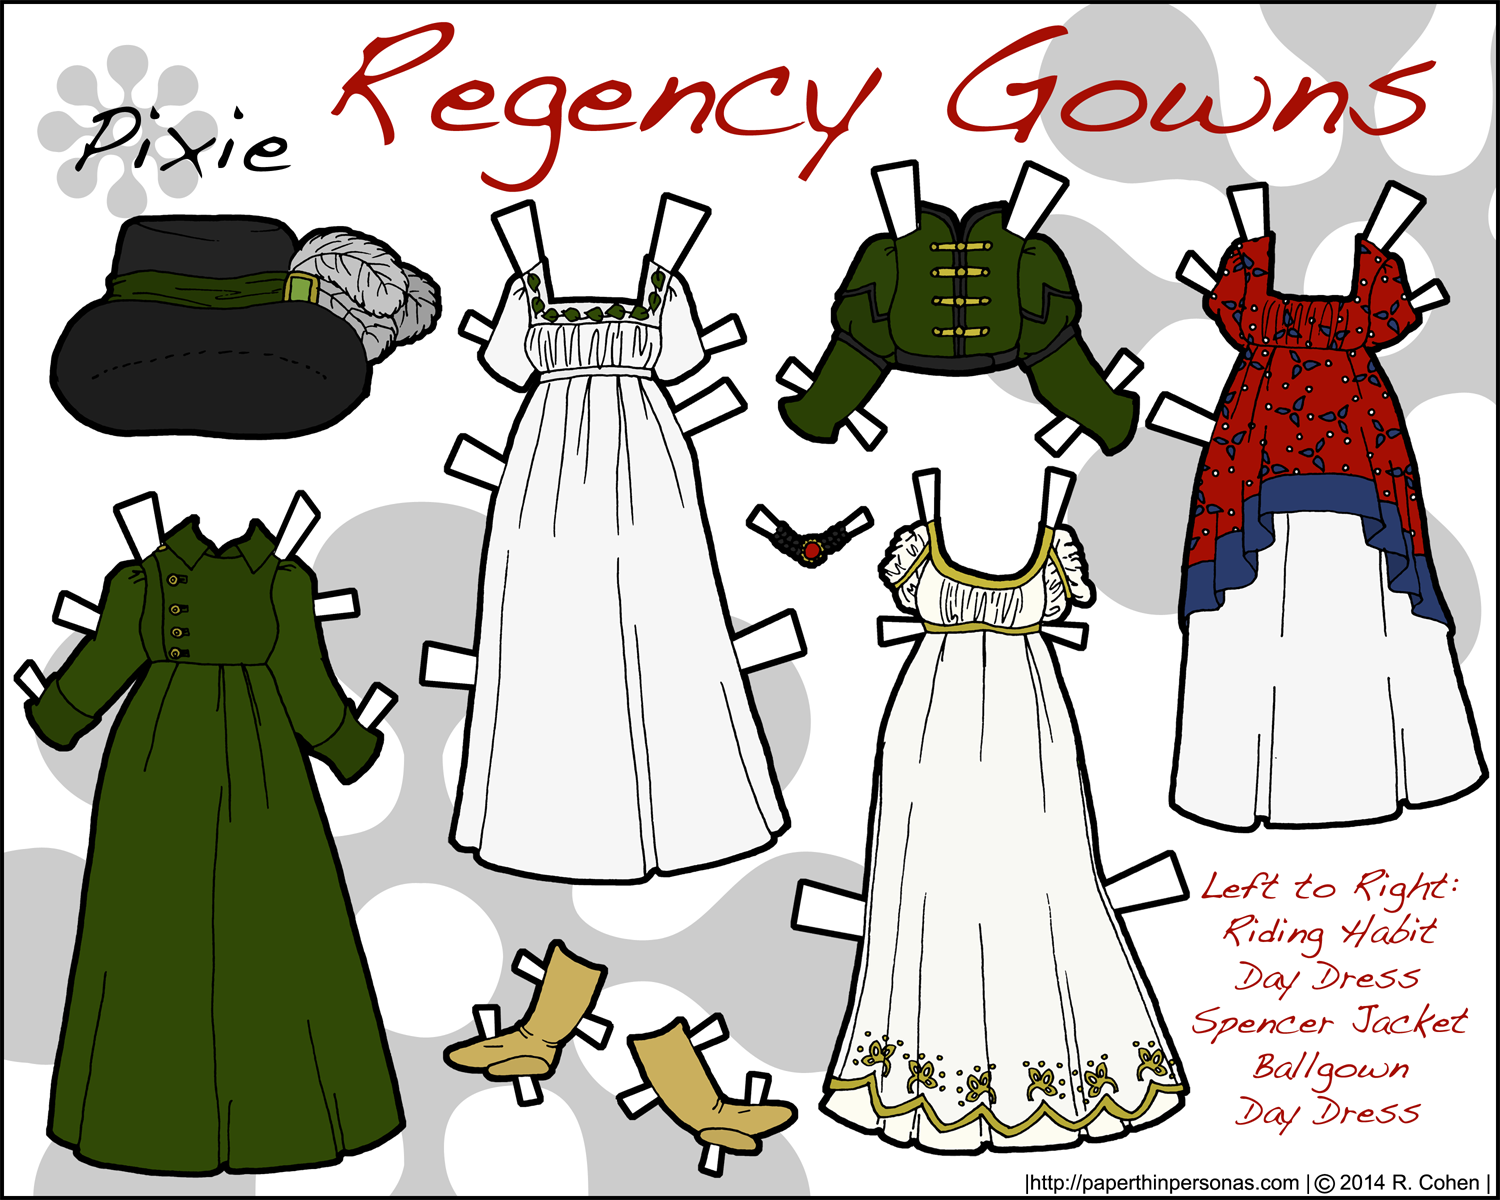 Regency era historical paper doll fashions in color from paperthinpersonas.com